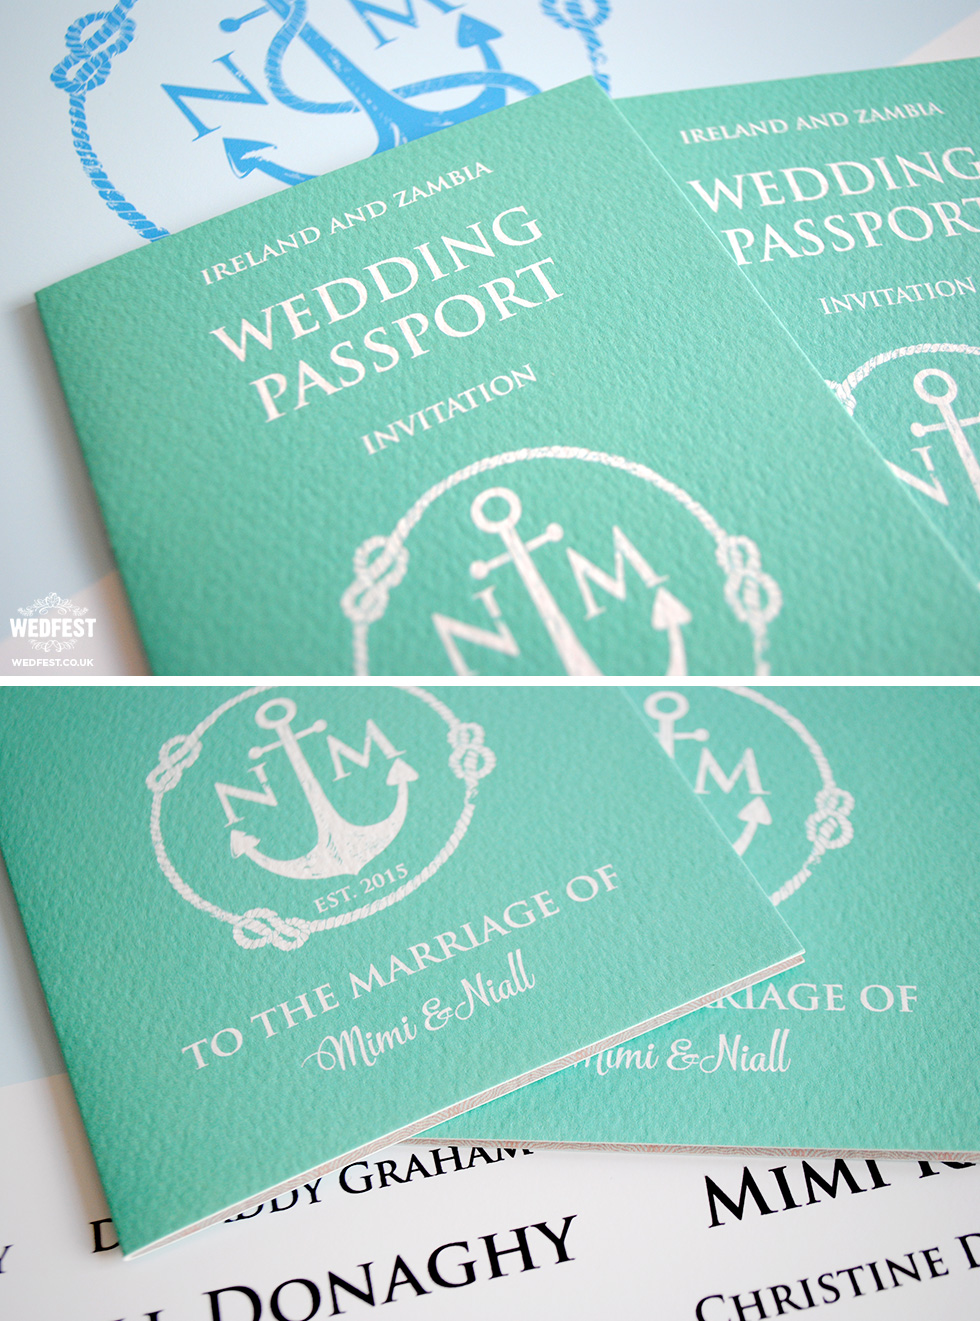 passport themed wedding invitation